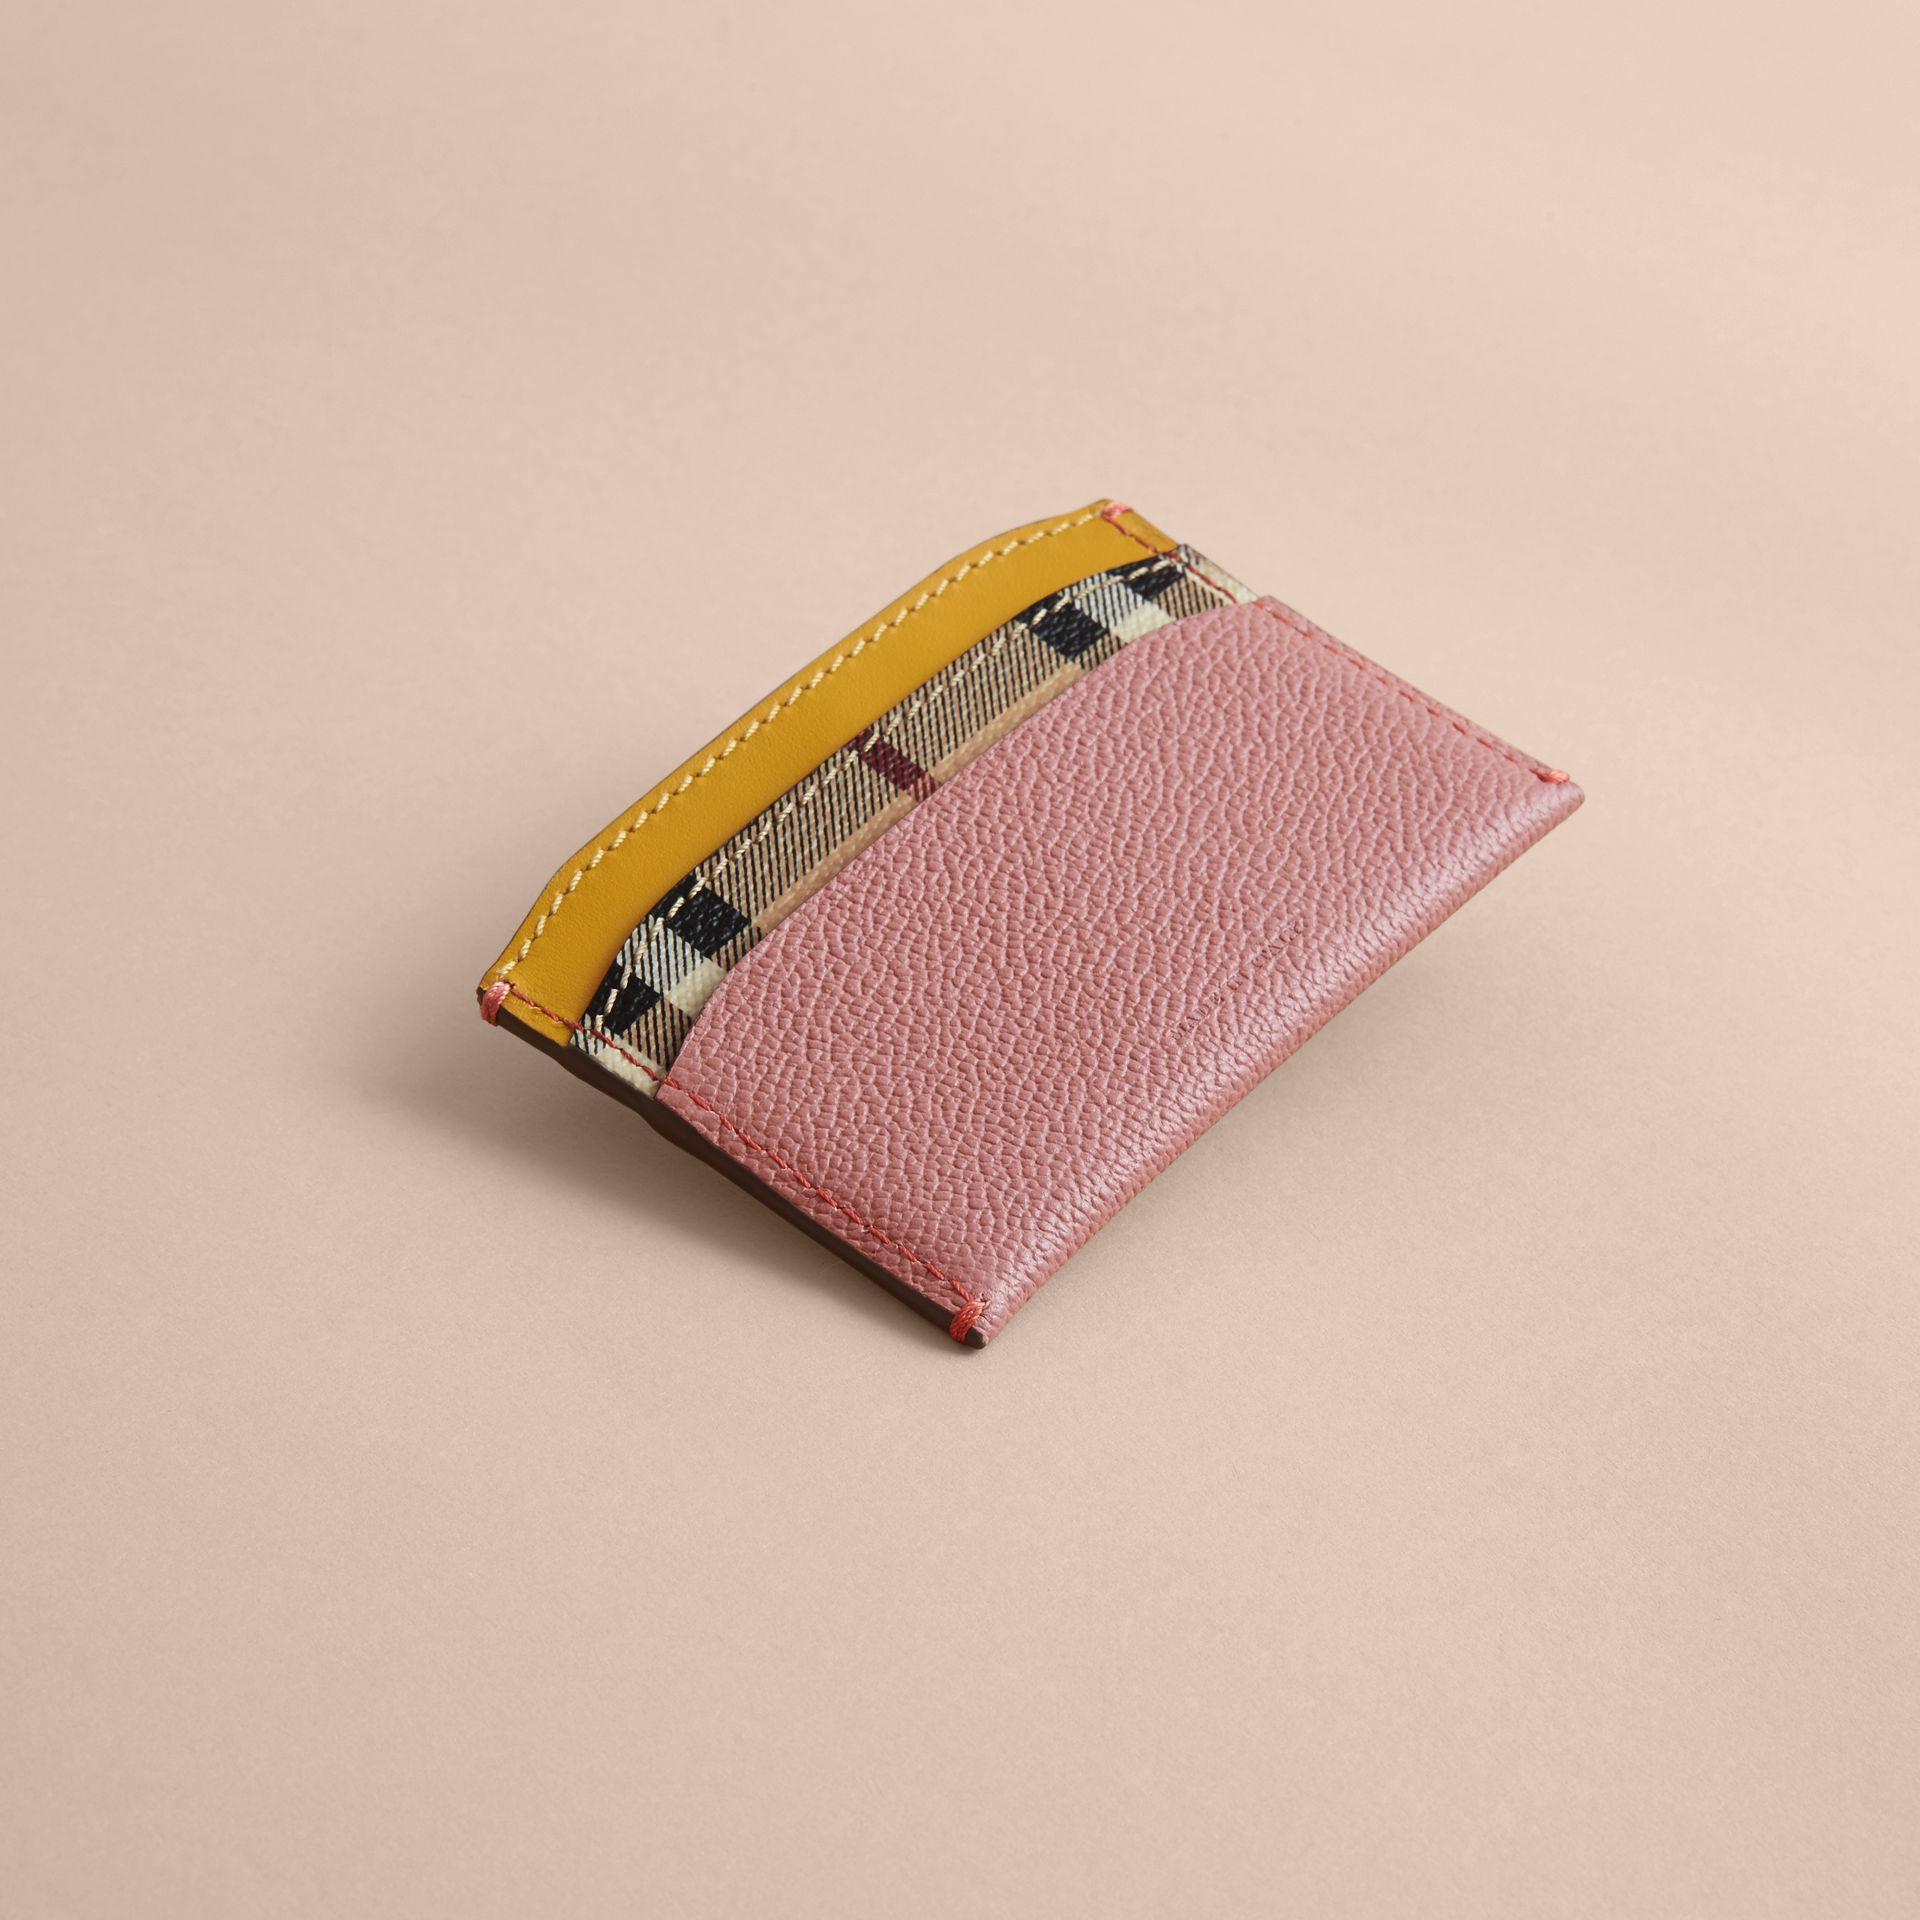 Colour Block Leather and Haymarket Check Card Case in Dusty Pink / Multi - Women | Burberry Australia - gallery image 3